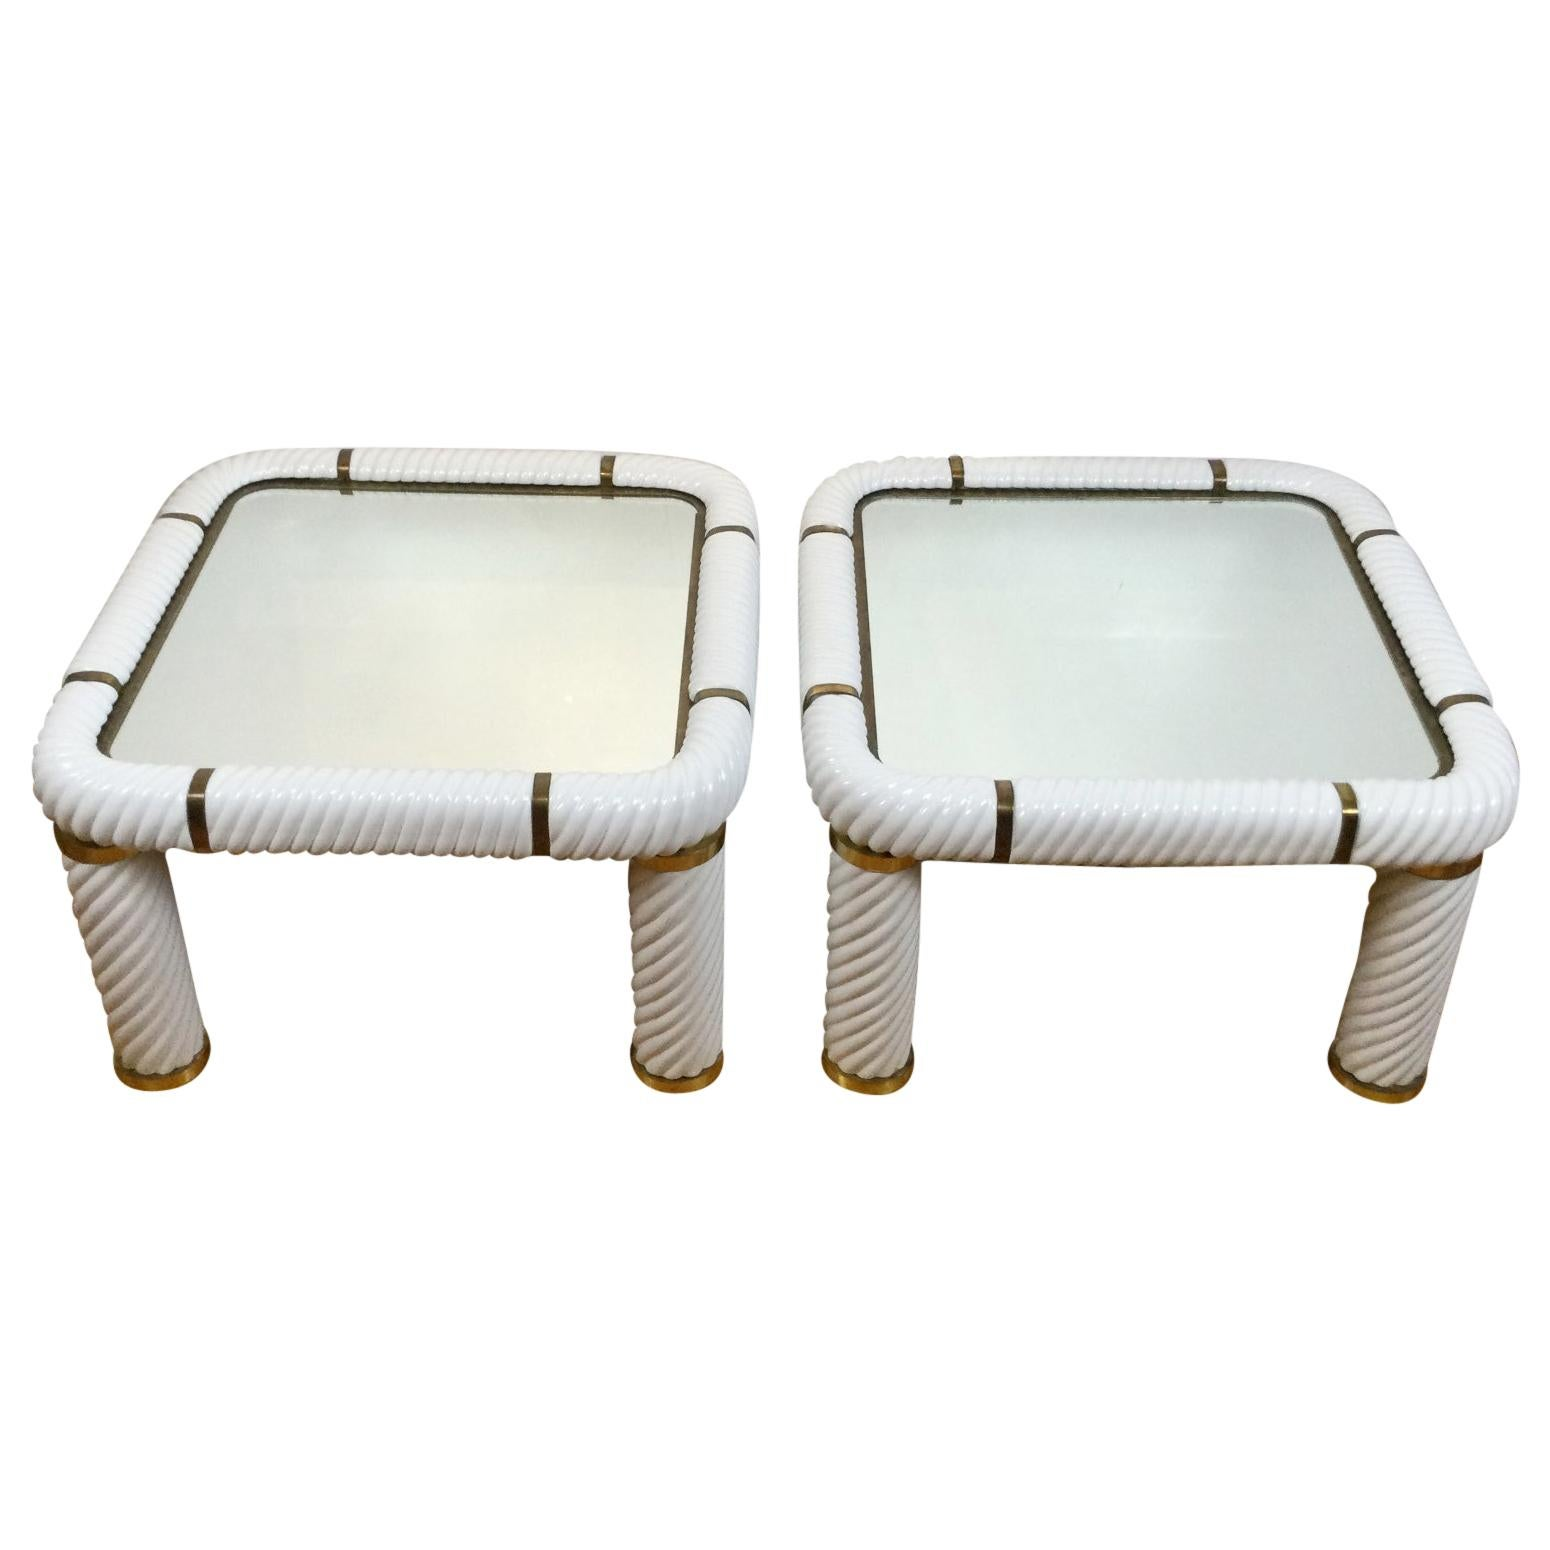 Tommaso Barbi Pair of Mirrored Coffee Tables with Fine Ceramic and Brass Finish